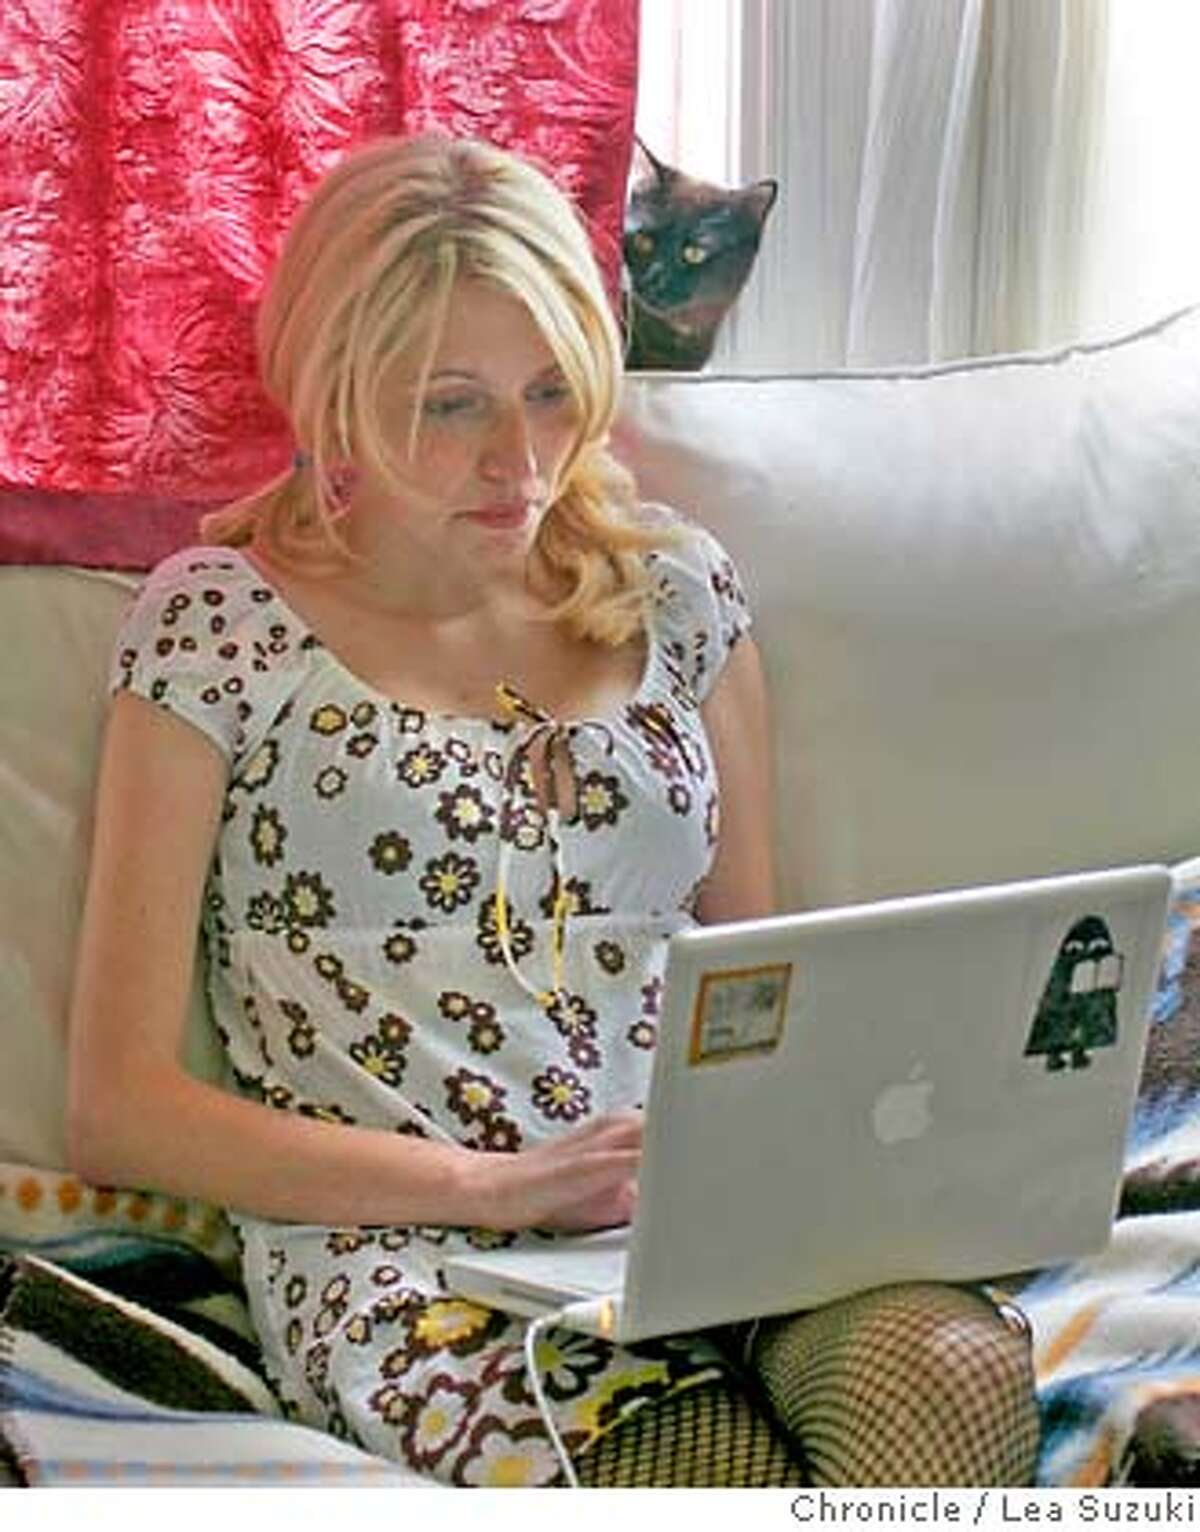 spyspace_009_ls.JPG Angela Petrella, a Spyspace user, at her home with her laptop on Sunday, April 1, 2007. Photo taken on 4/1/07, in San Francisco, CA. Photo by Lea Suzuki/ The Chronicle (Angela Petrella)cq MANDATORY CREDIT FOR PHOTOG AND SF CHRONICLE/NO SALES-MAGS OUT.